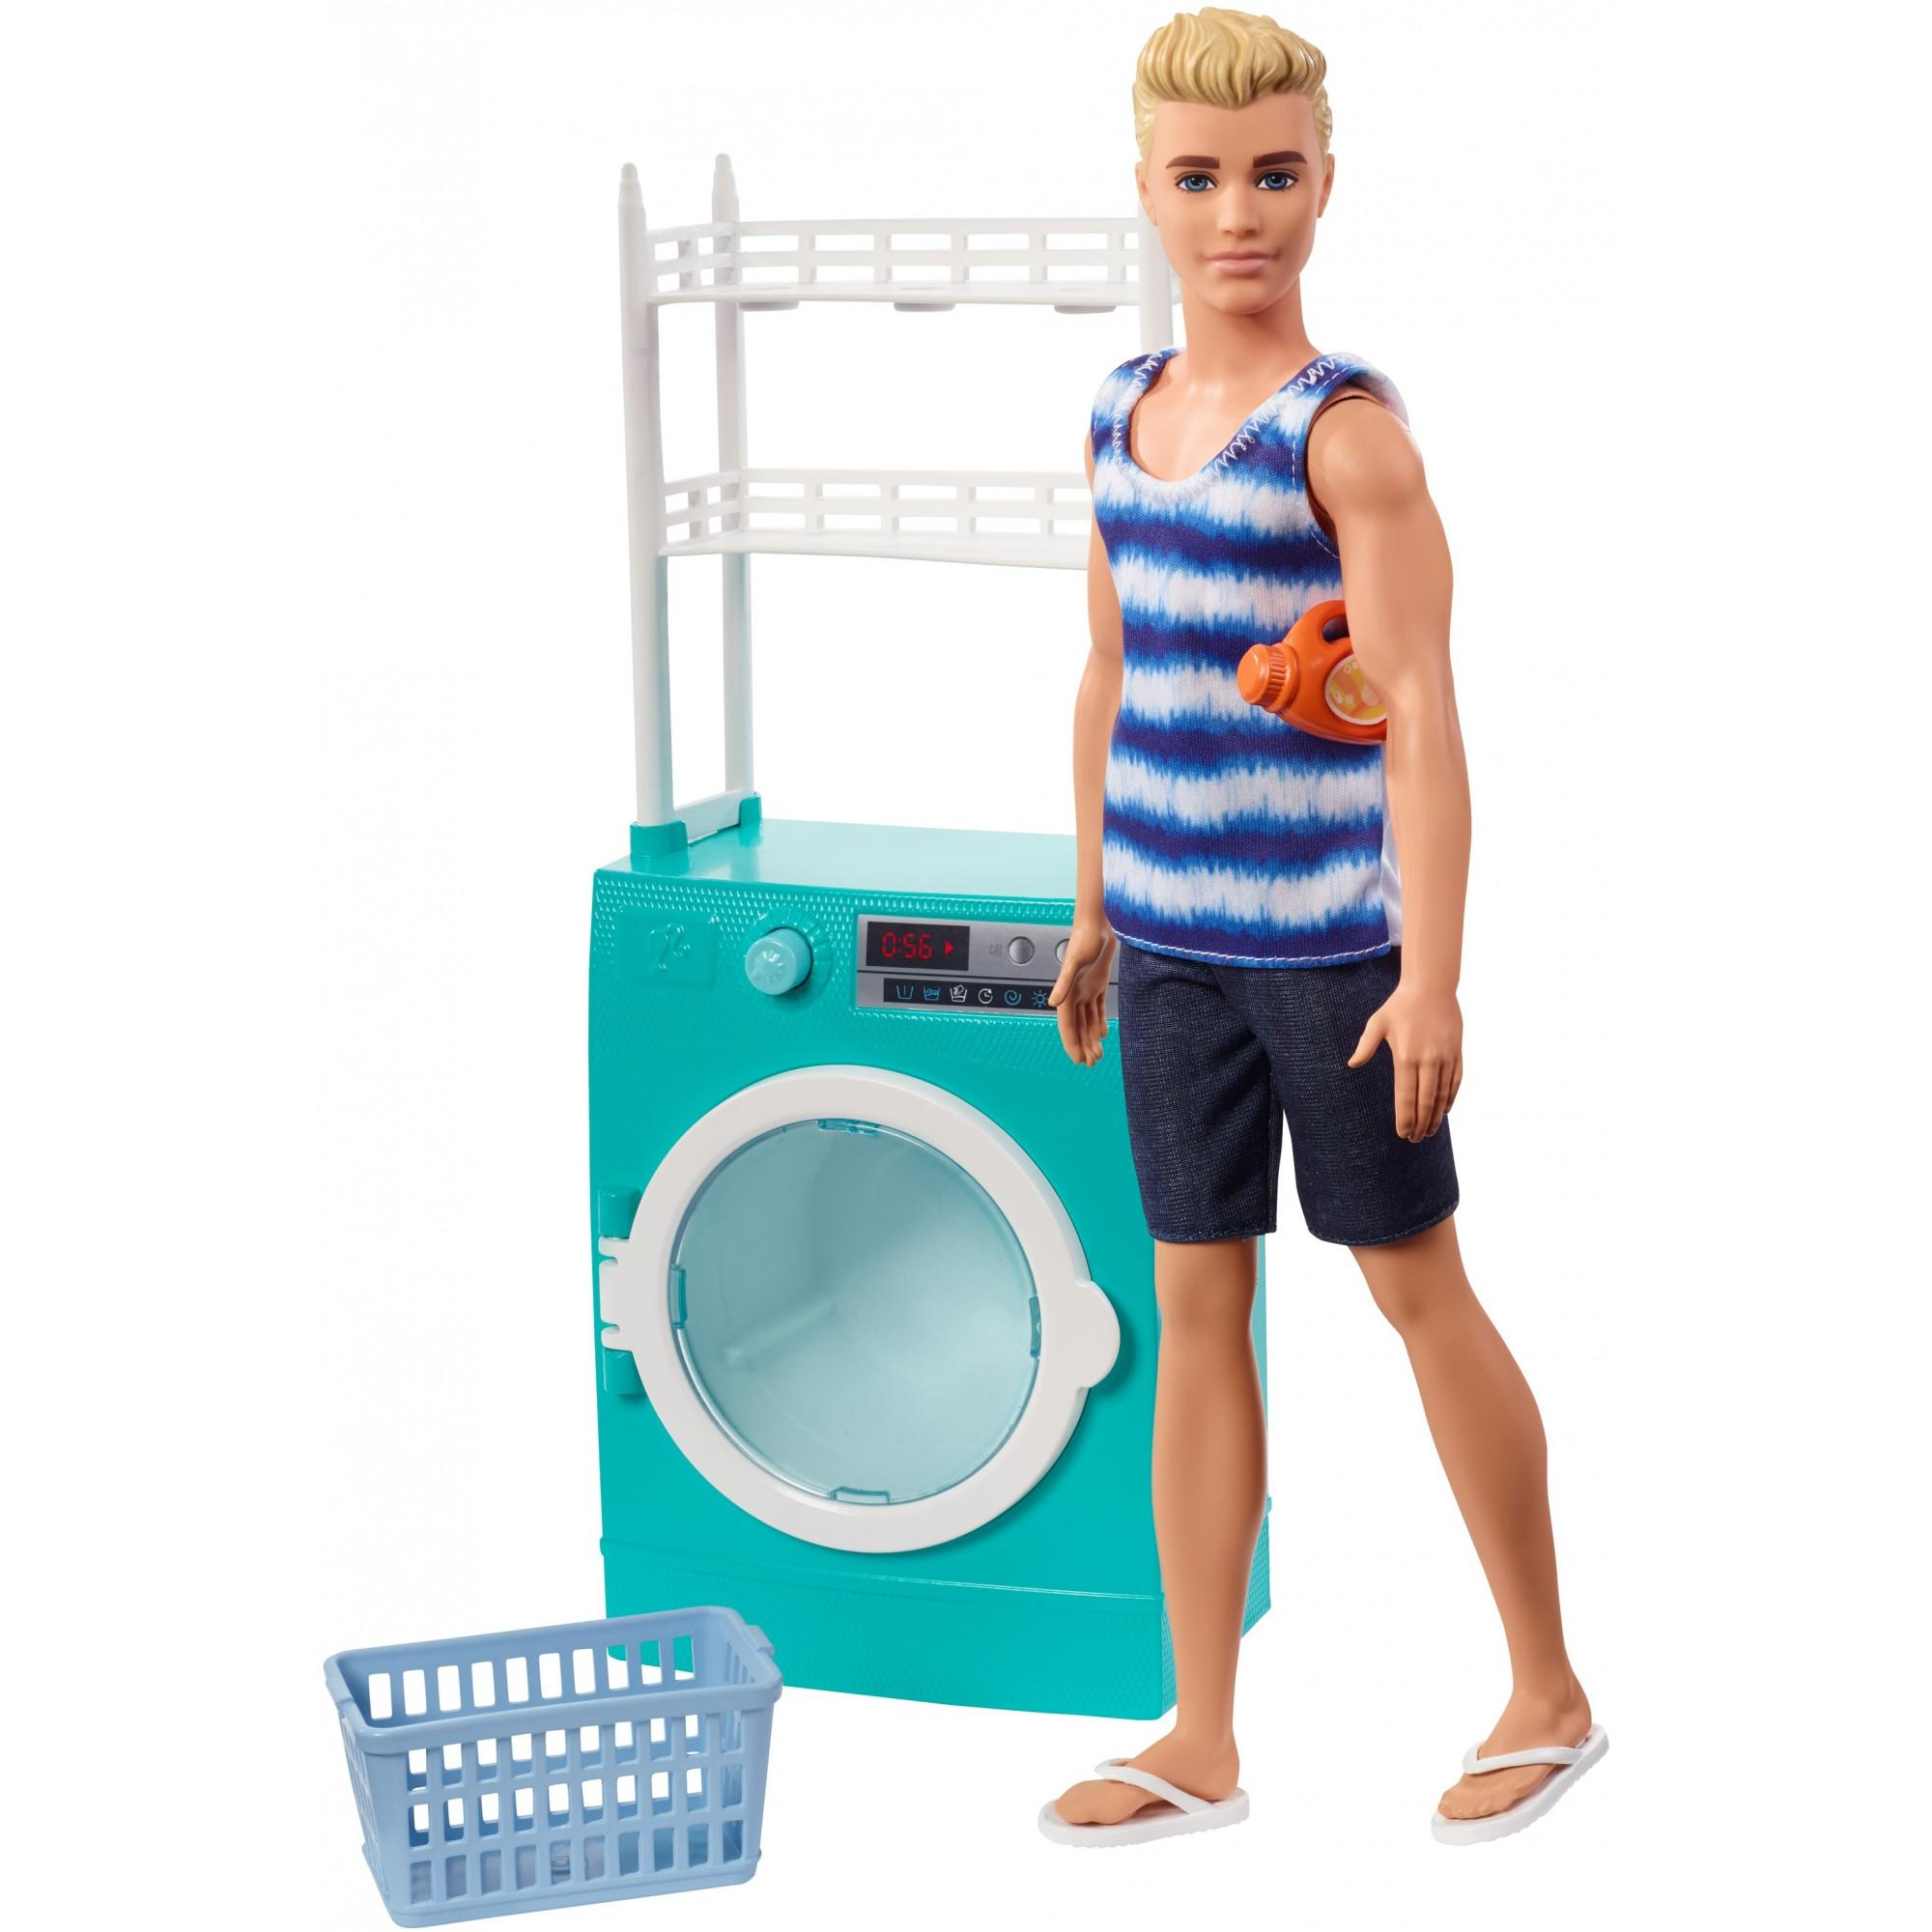 Barbie Ken Doll With Spinning Washer Dryer Laundry Themed